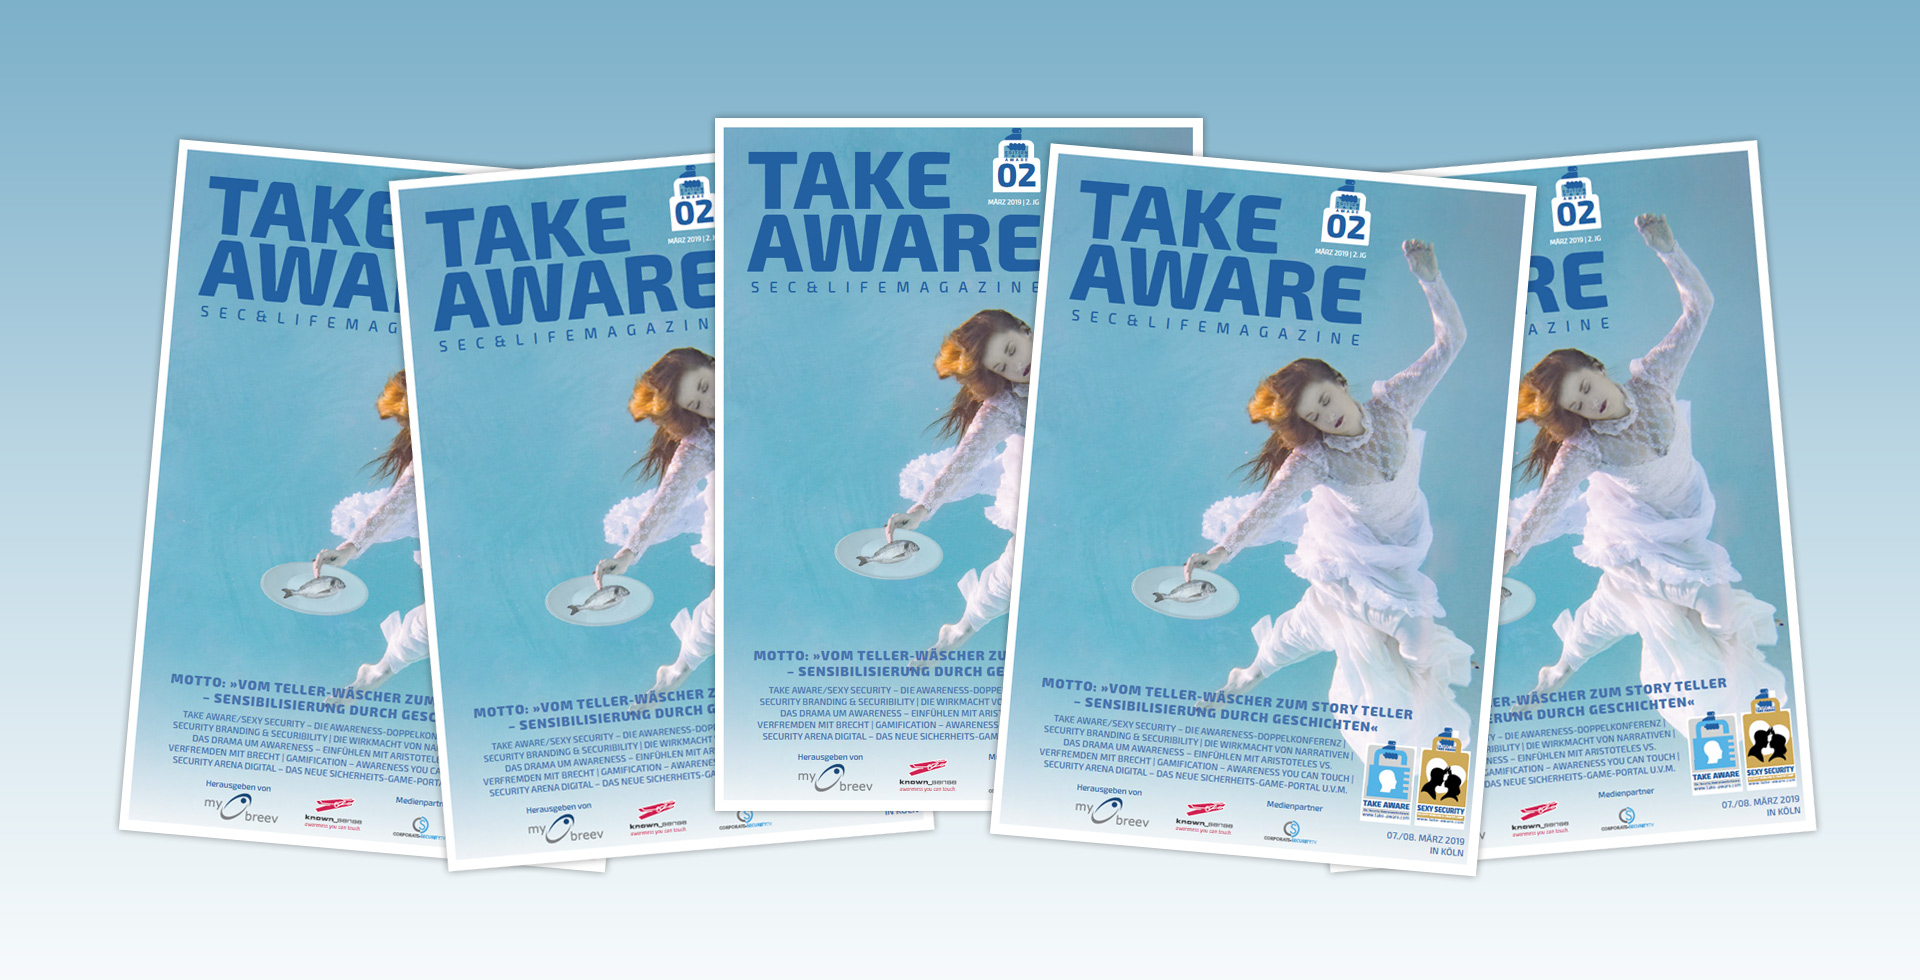 TAKE AWARE SEC&LIFE Magazine